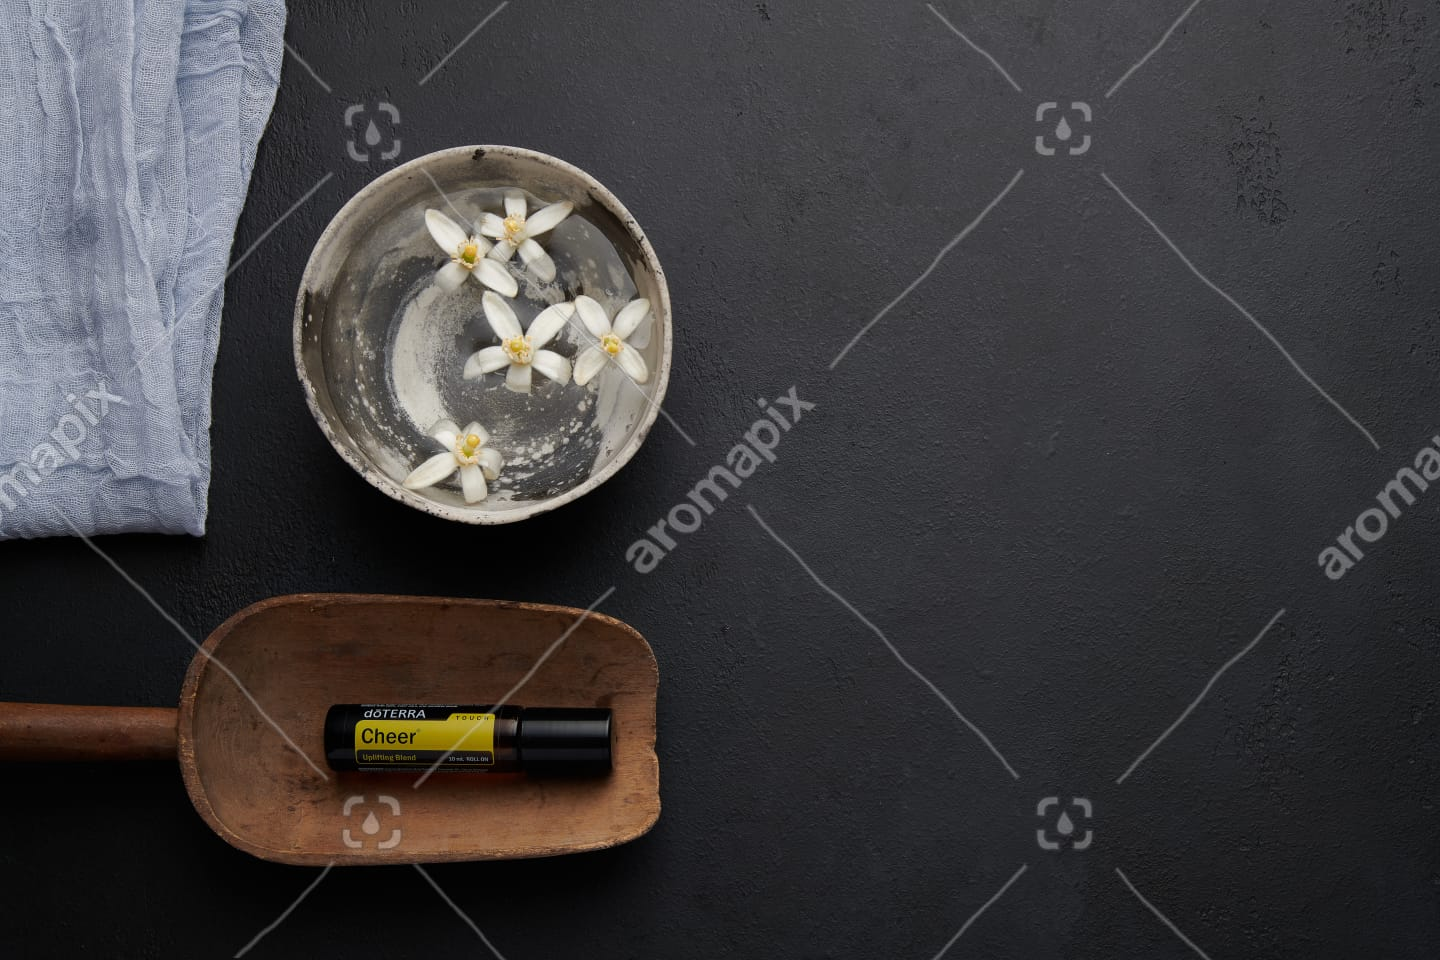 doTERRA Cheer Touch in a wooden scoop with orange blosson on black